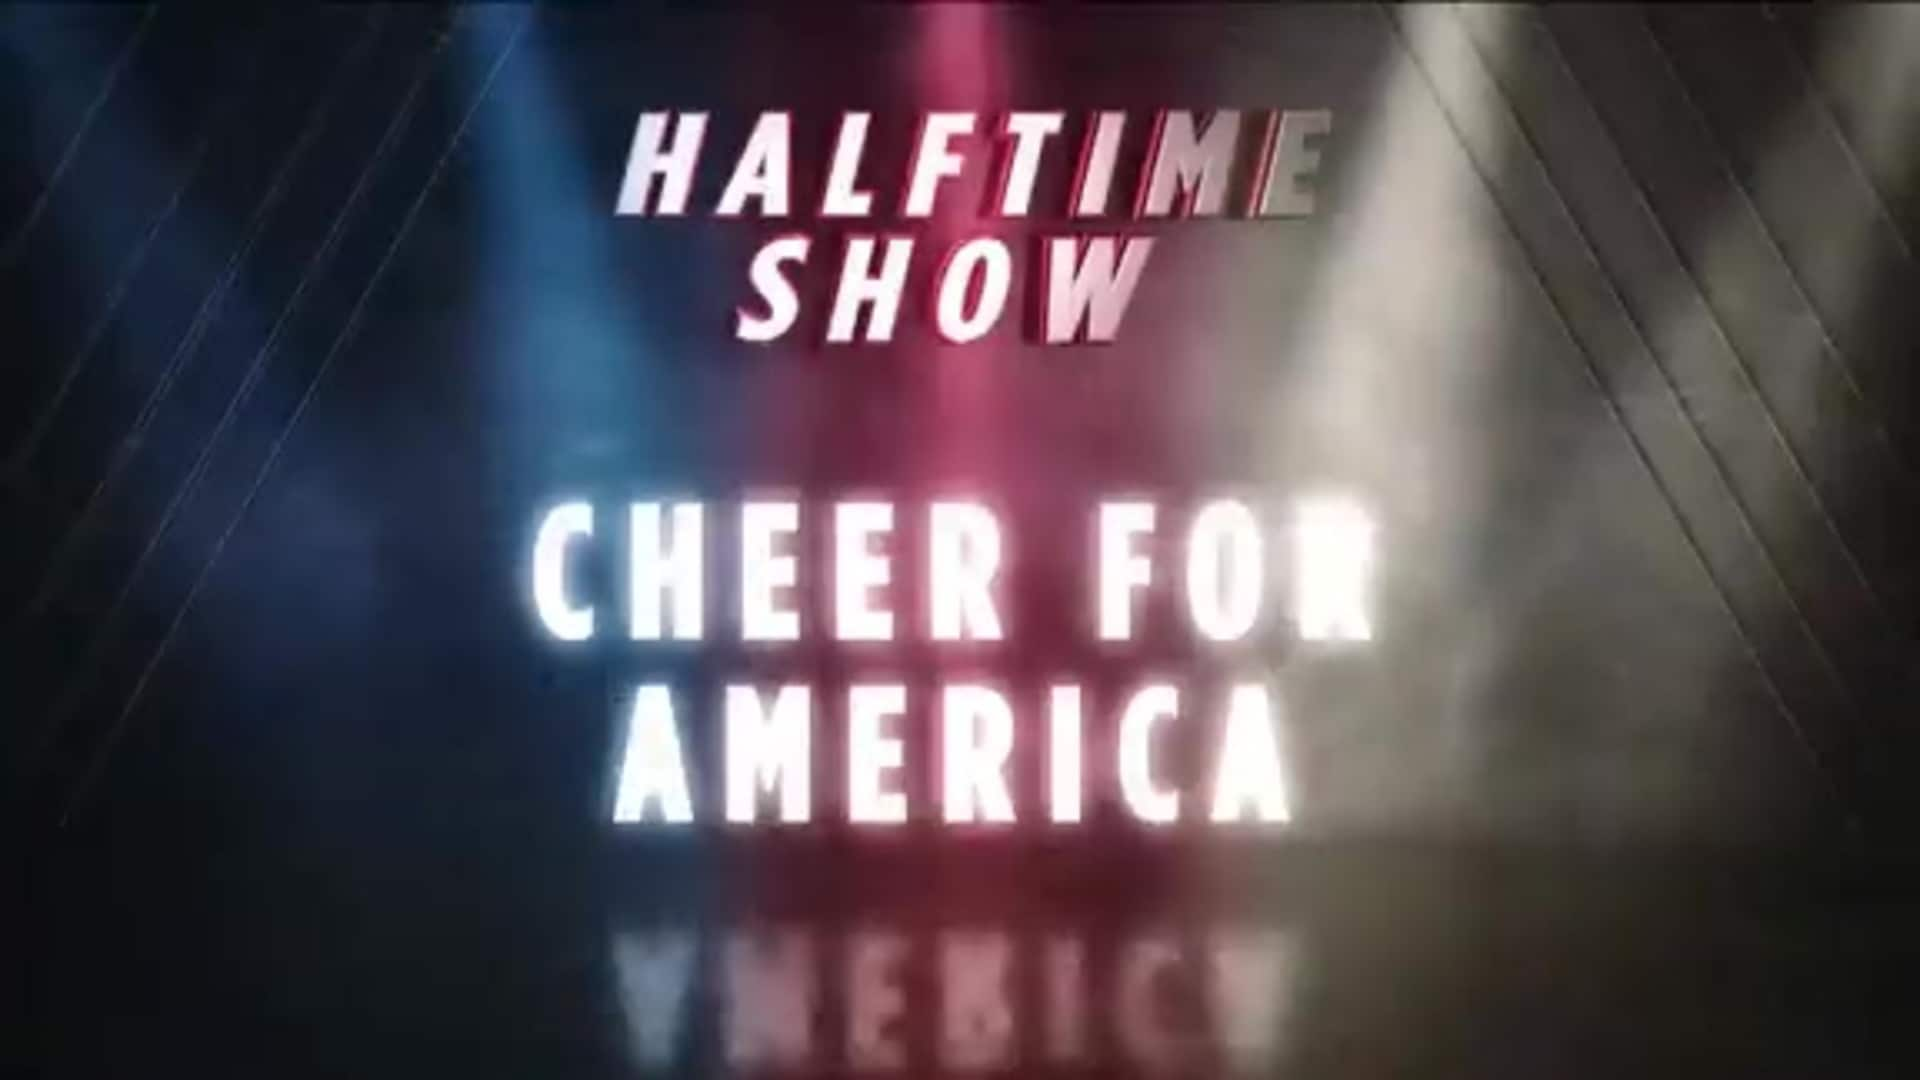 Pelicans Halftime: Cheer For America - January 26, 2020 vs. Boston Celtics